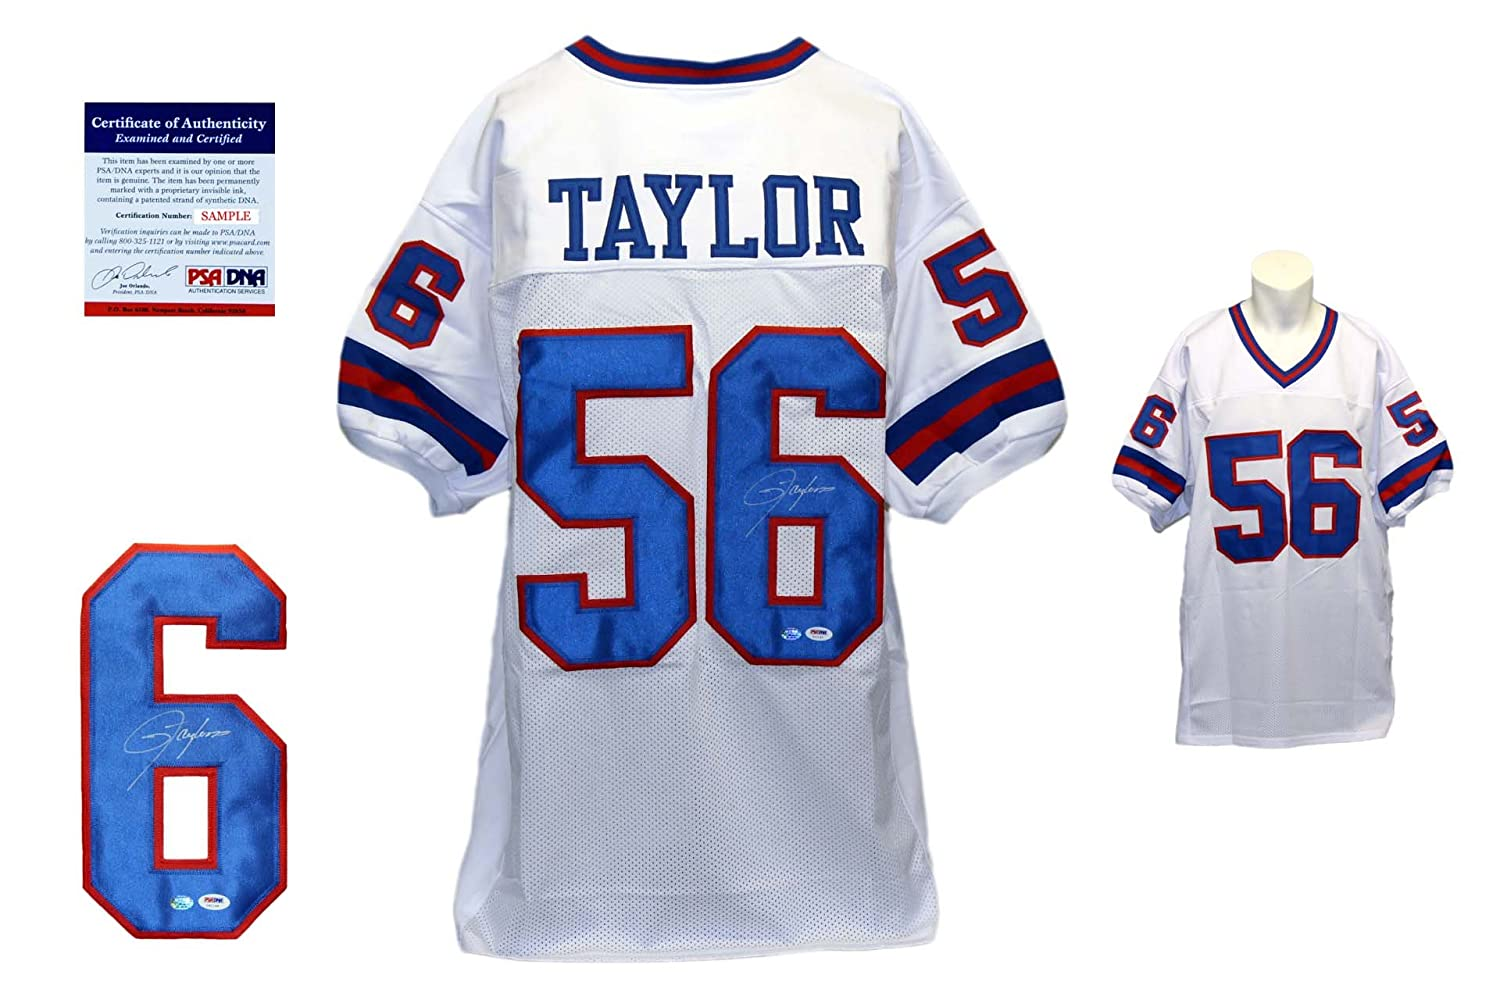 Lawrence Taylor Autographed Signed Custom Jersey - JSA - White at Amazon s  Sports Collectibles Store 24a7c80f2